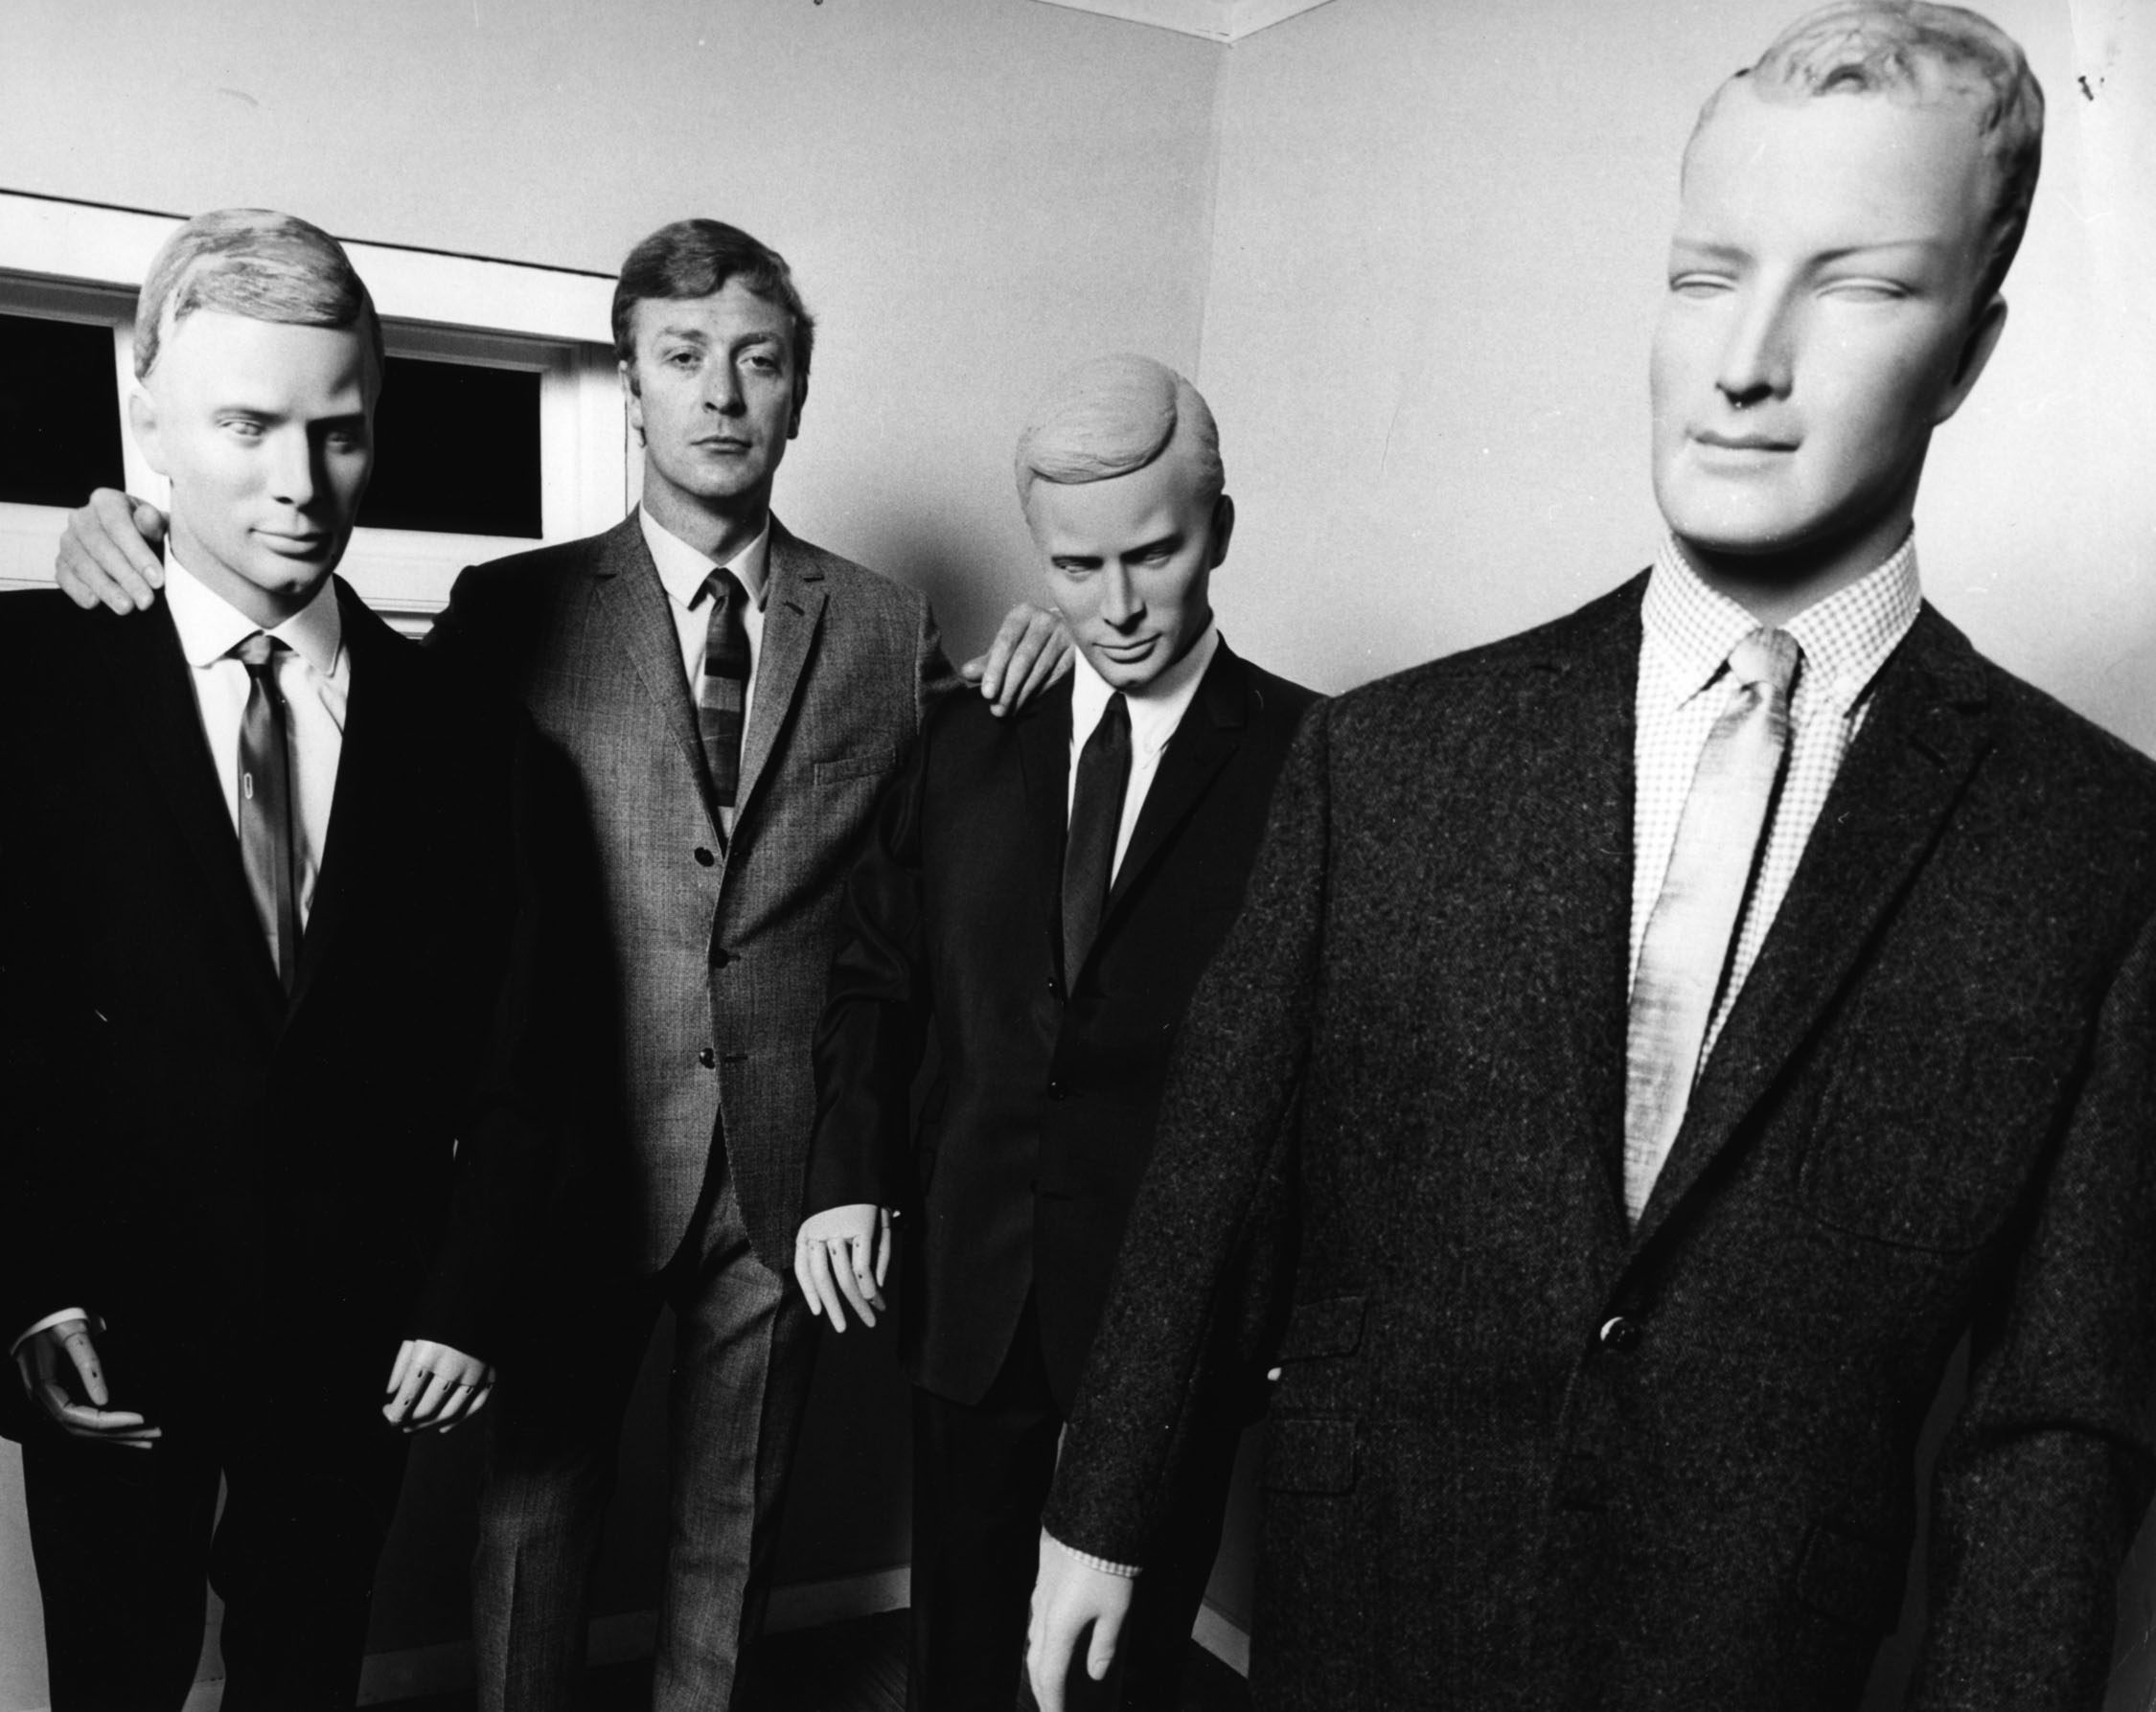 Michael Caine, star of Alfie (1966), poses with suits made to promote the film.